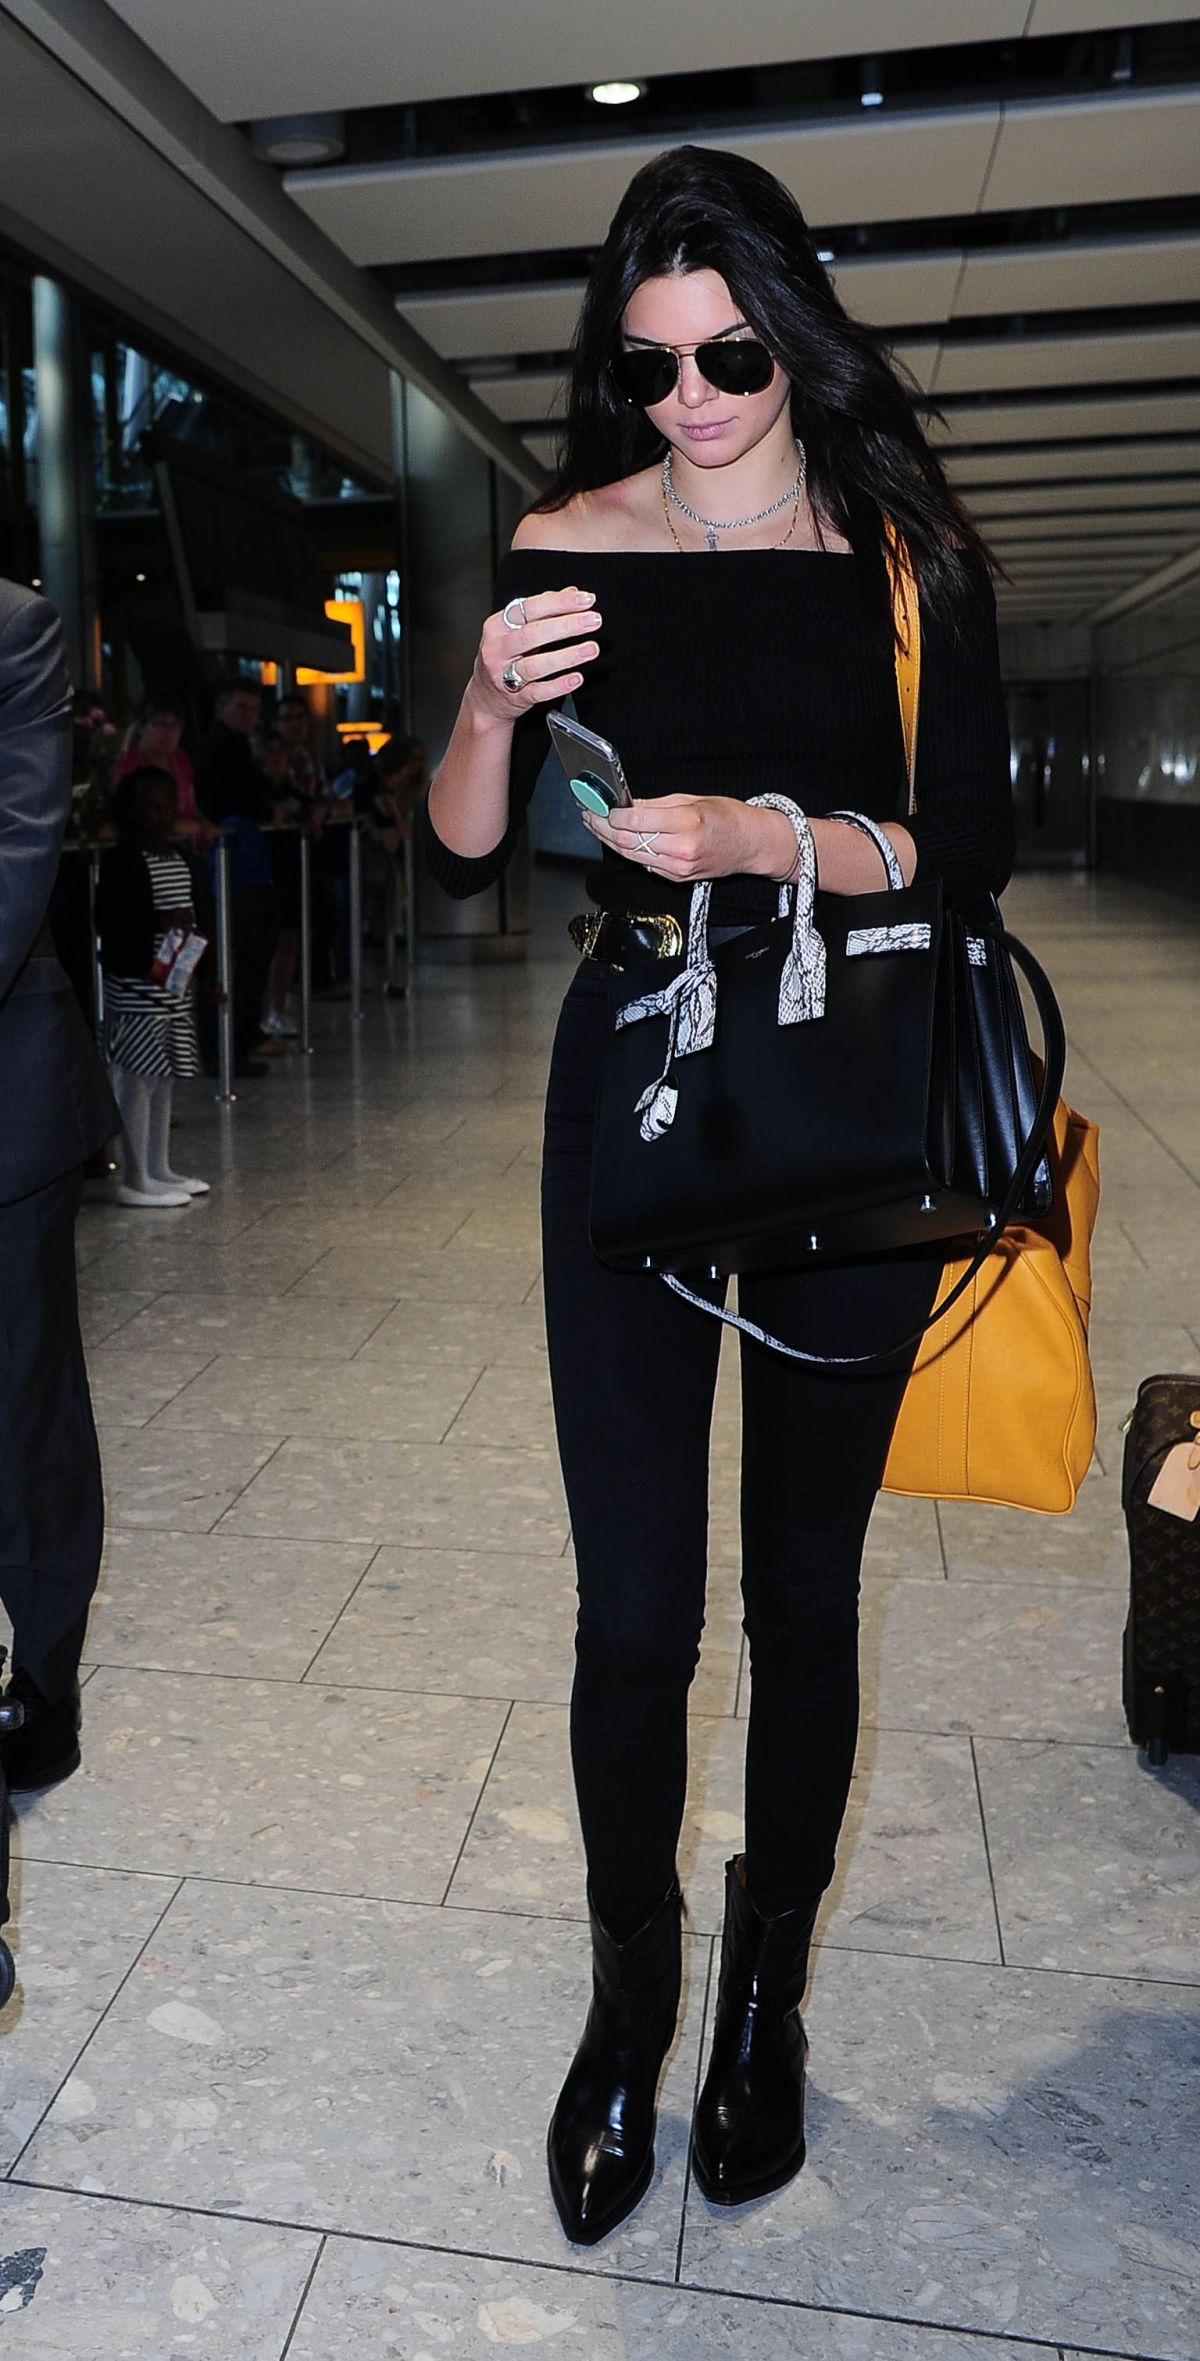 KENDALL JENNER at Heathrow Airport in London 06/27/2015